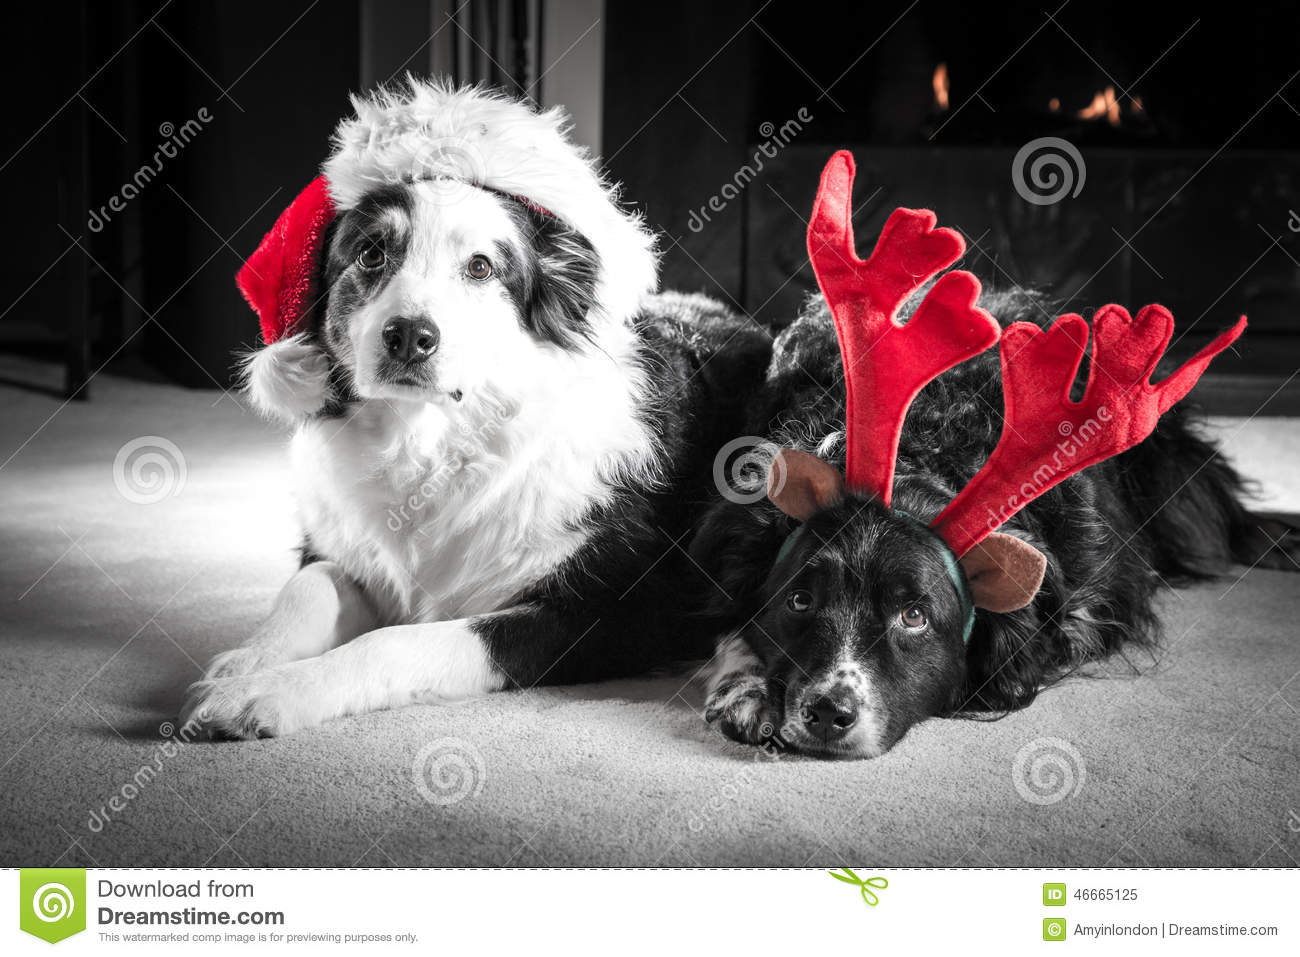 Christmas card dogs stock image. Image of patient, canine - 46665125